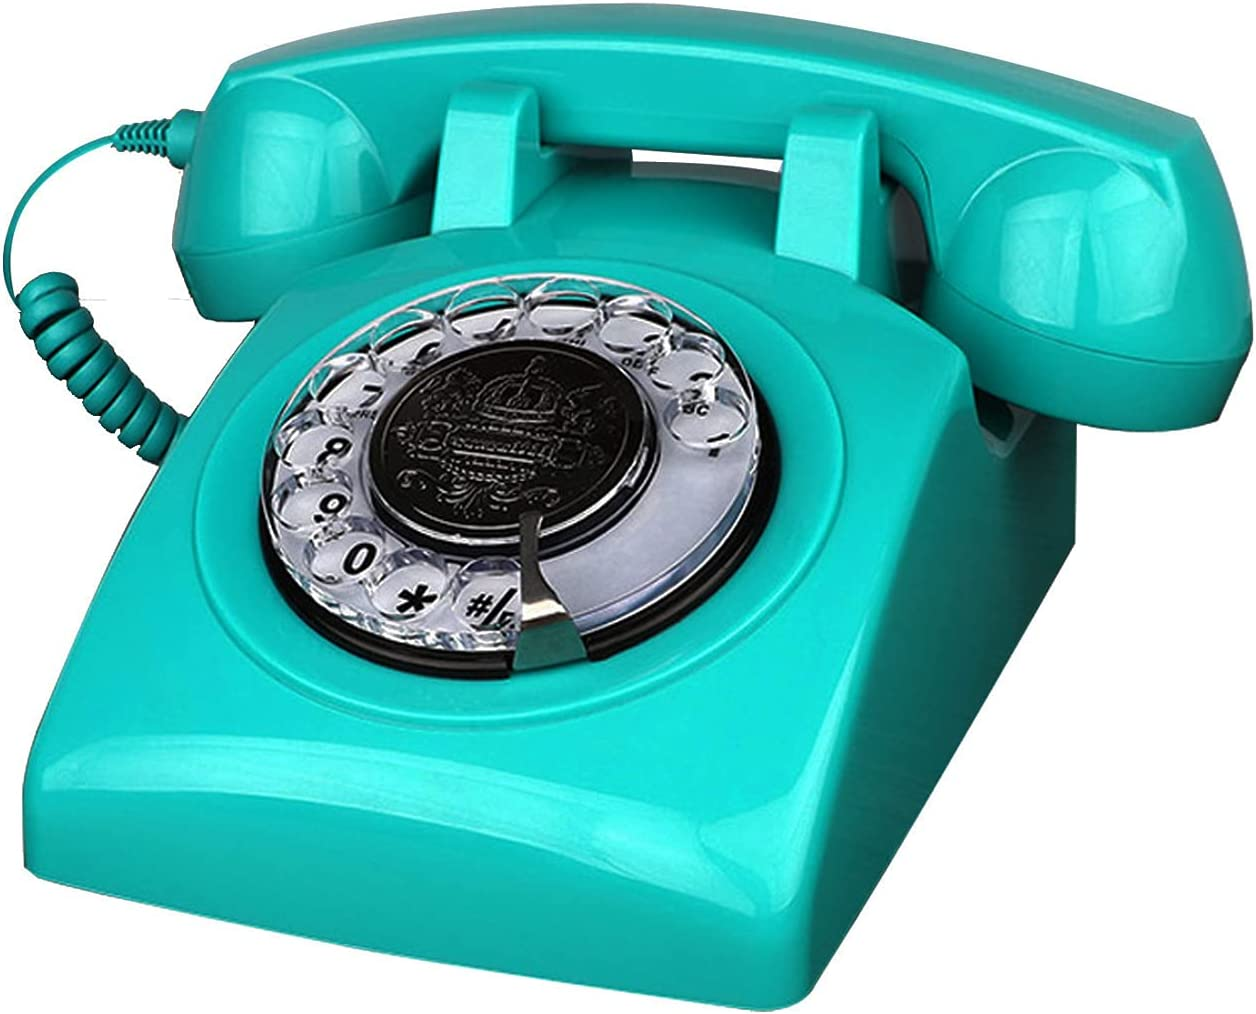 TelPal Retro Landline Phone, Corded Antique Vintage Phone with Old Fashion Rotary Dial Keypad, Decorative Classic 80s Phone for Gift